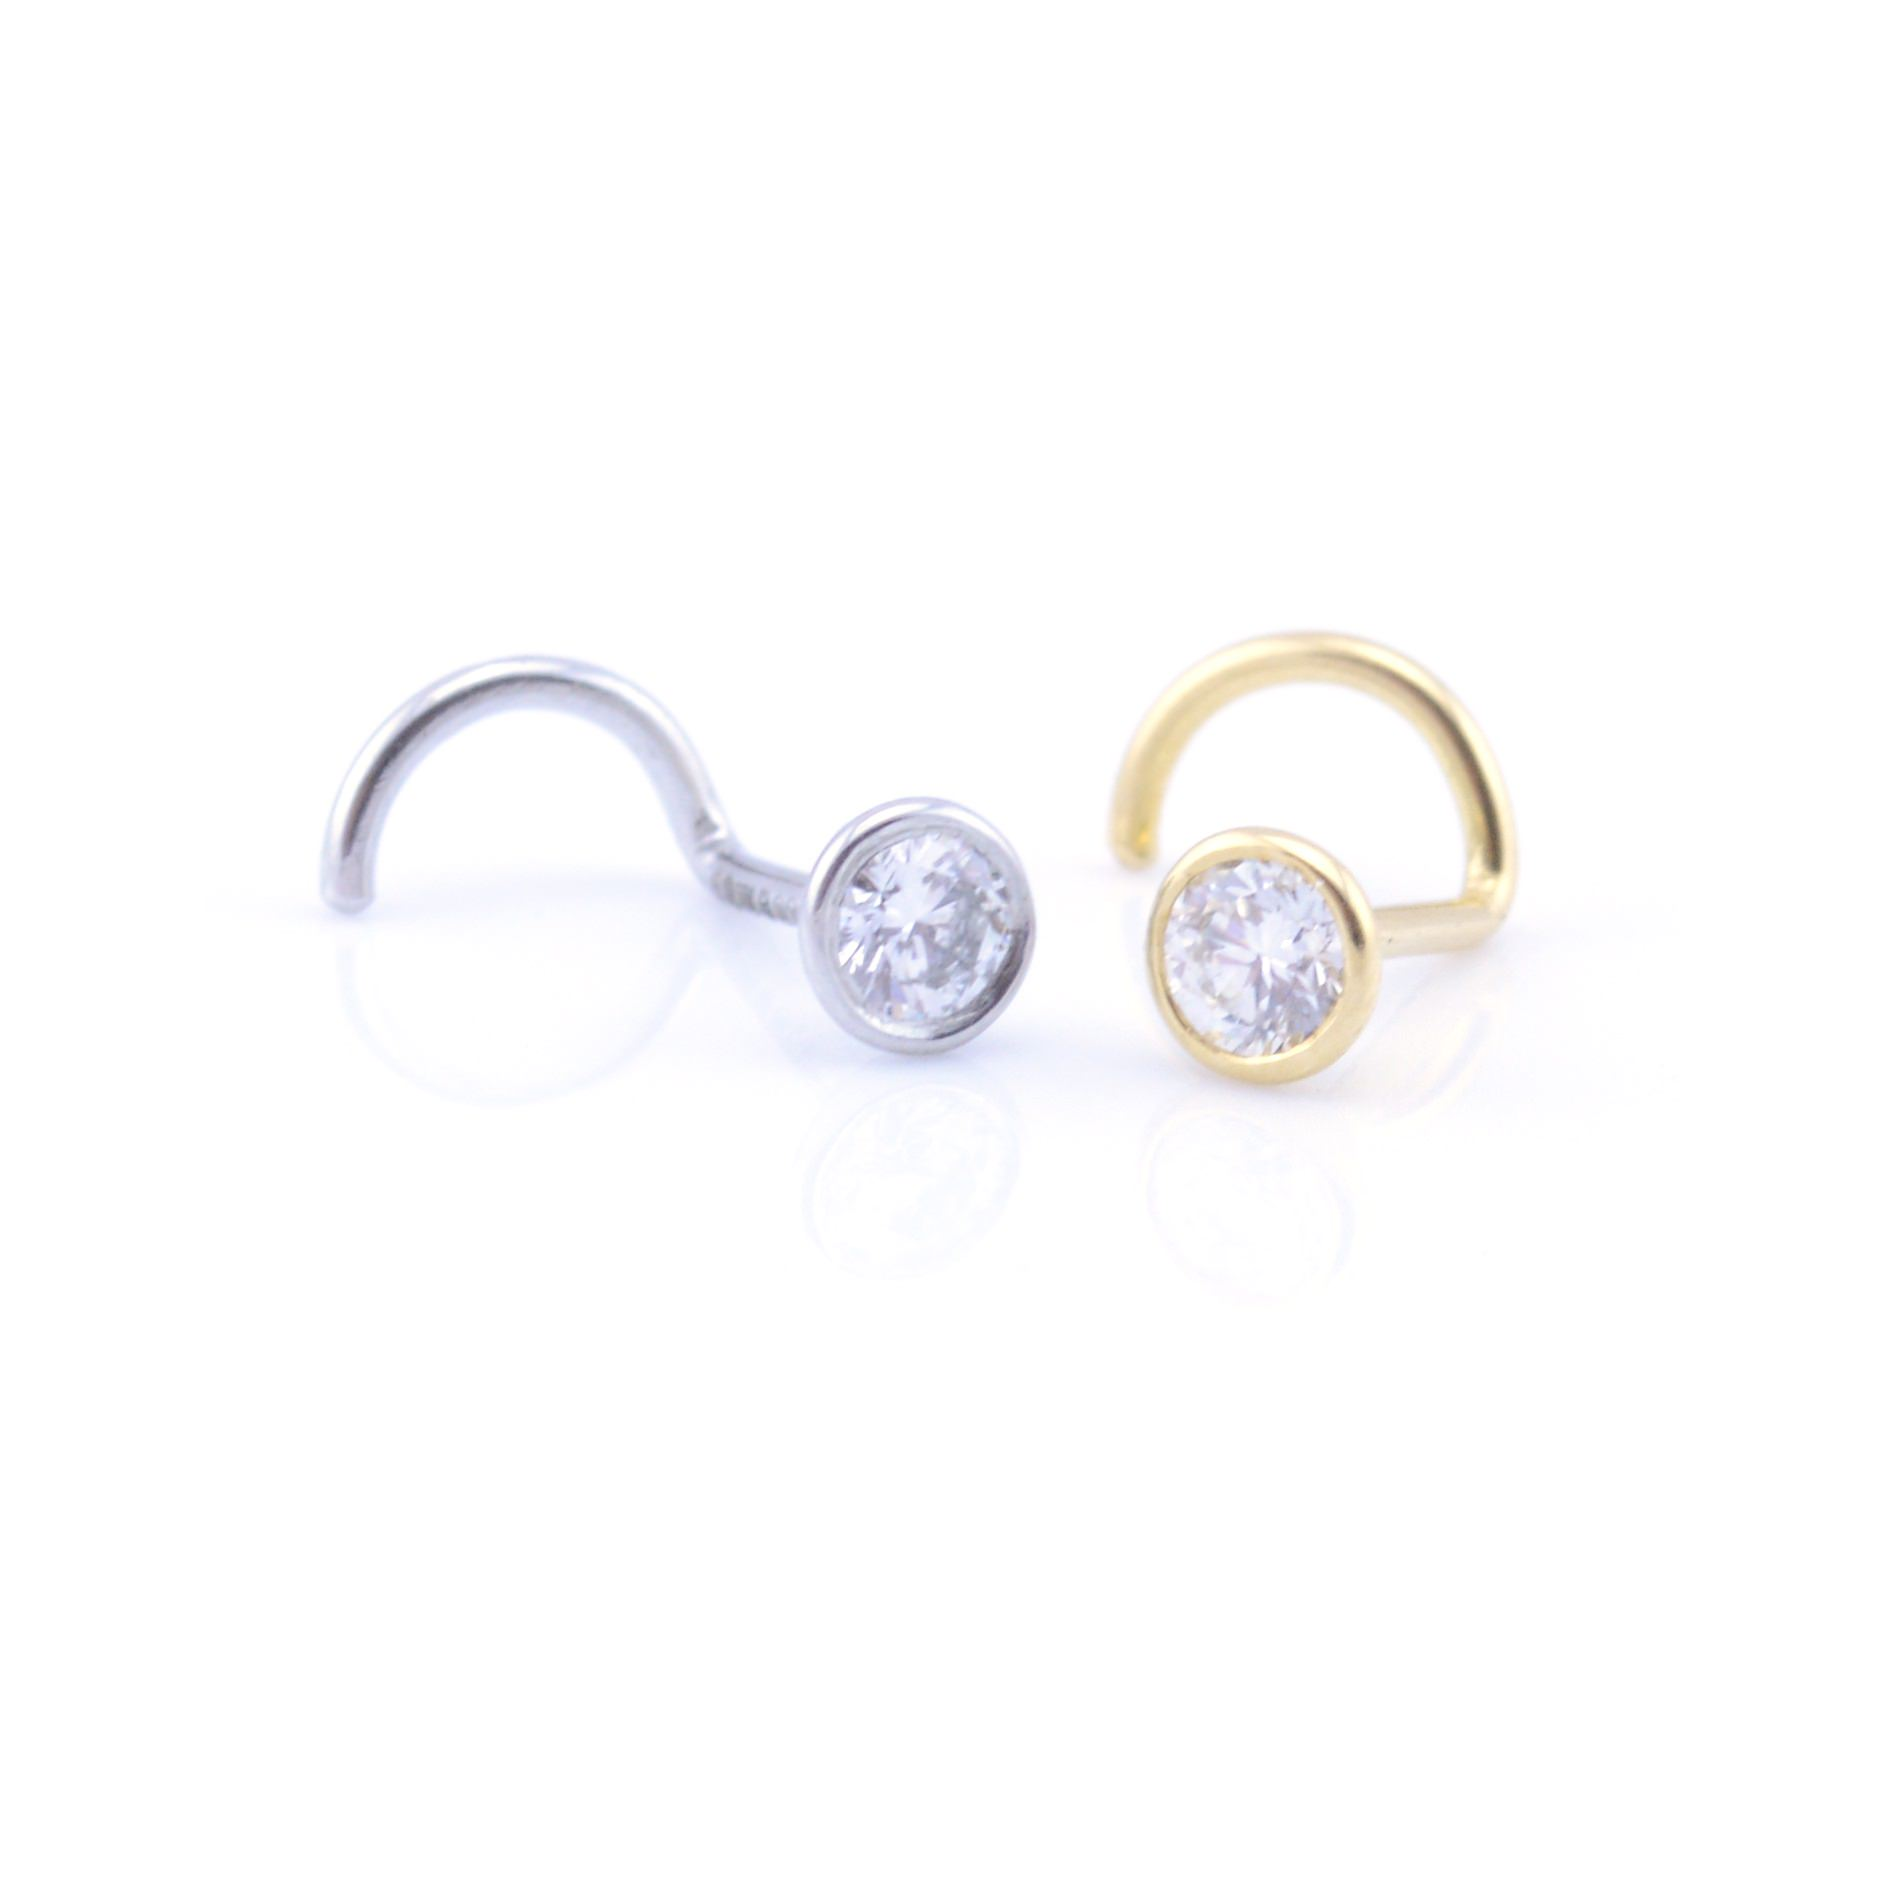 3776724a6 Gold, Platinum & Diamond Nose Stud | Vault 101 Limited | Free Delivery